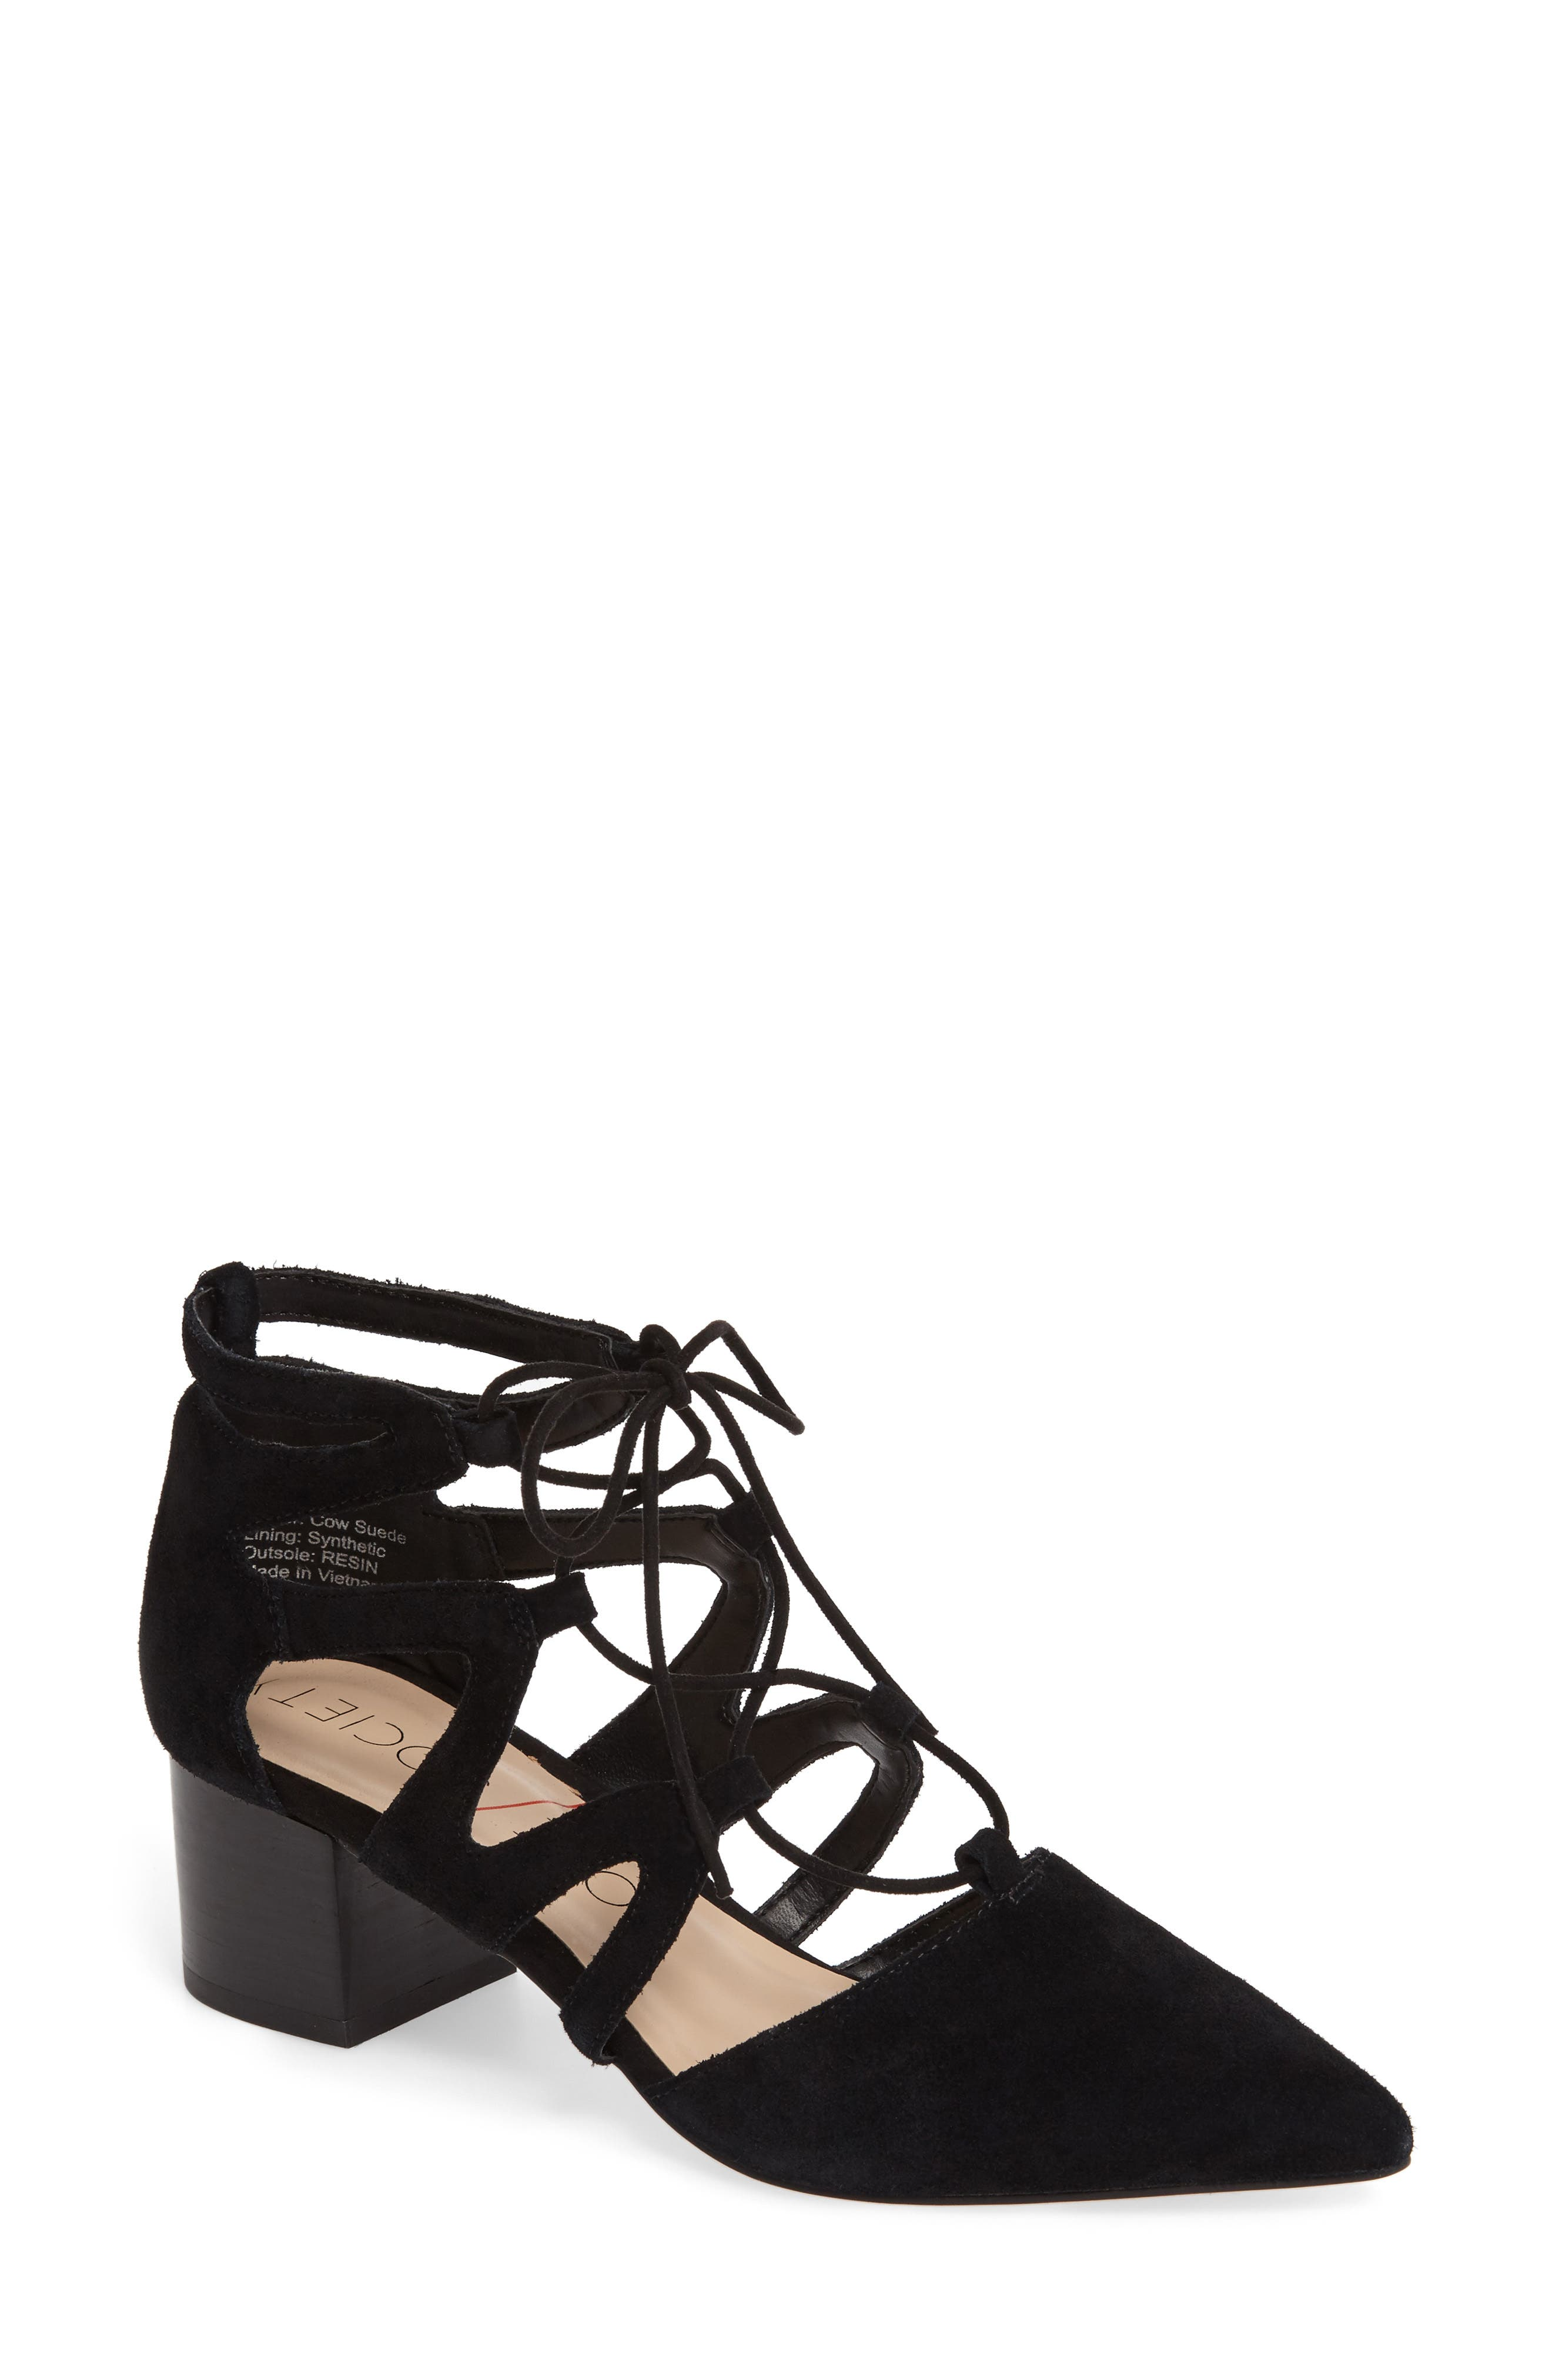 Alternate Image 1 Selected - Sole Society Kitt Ghillie Lace Pump (Women)